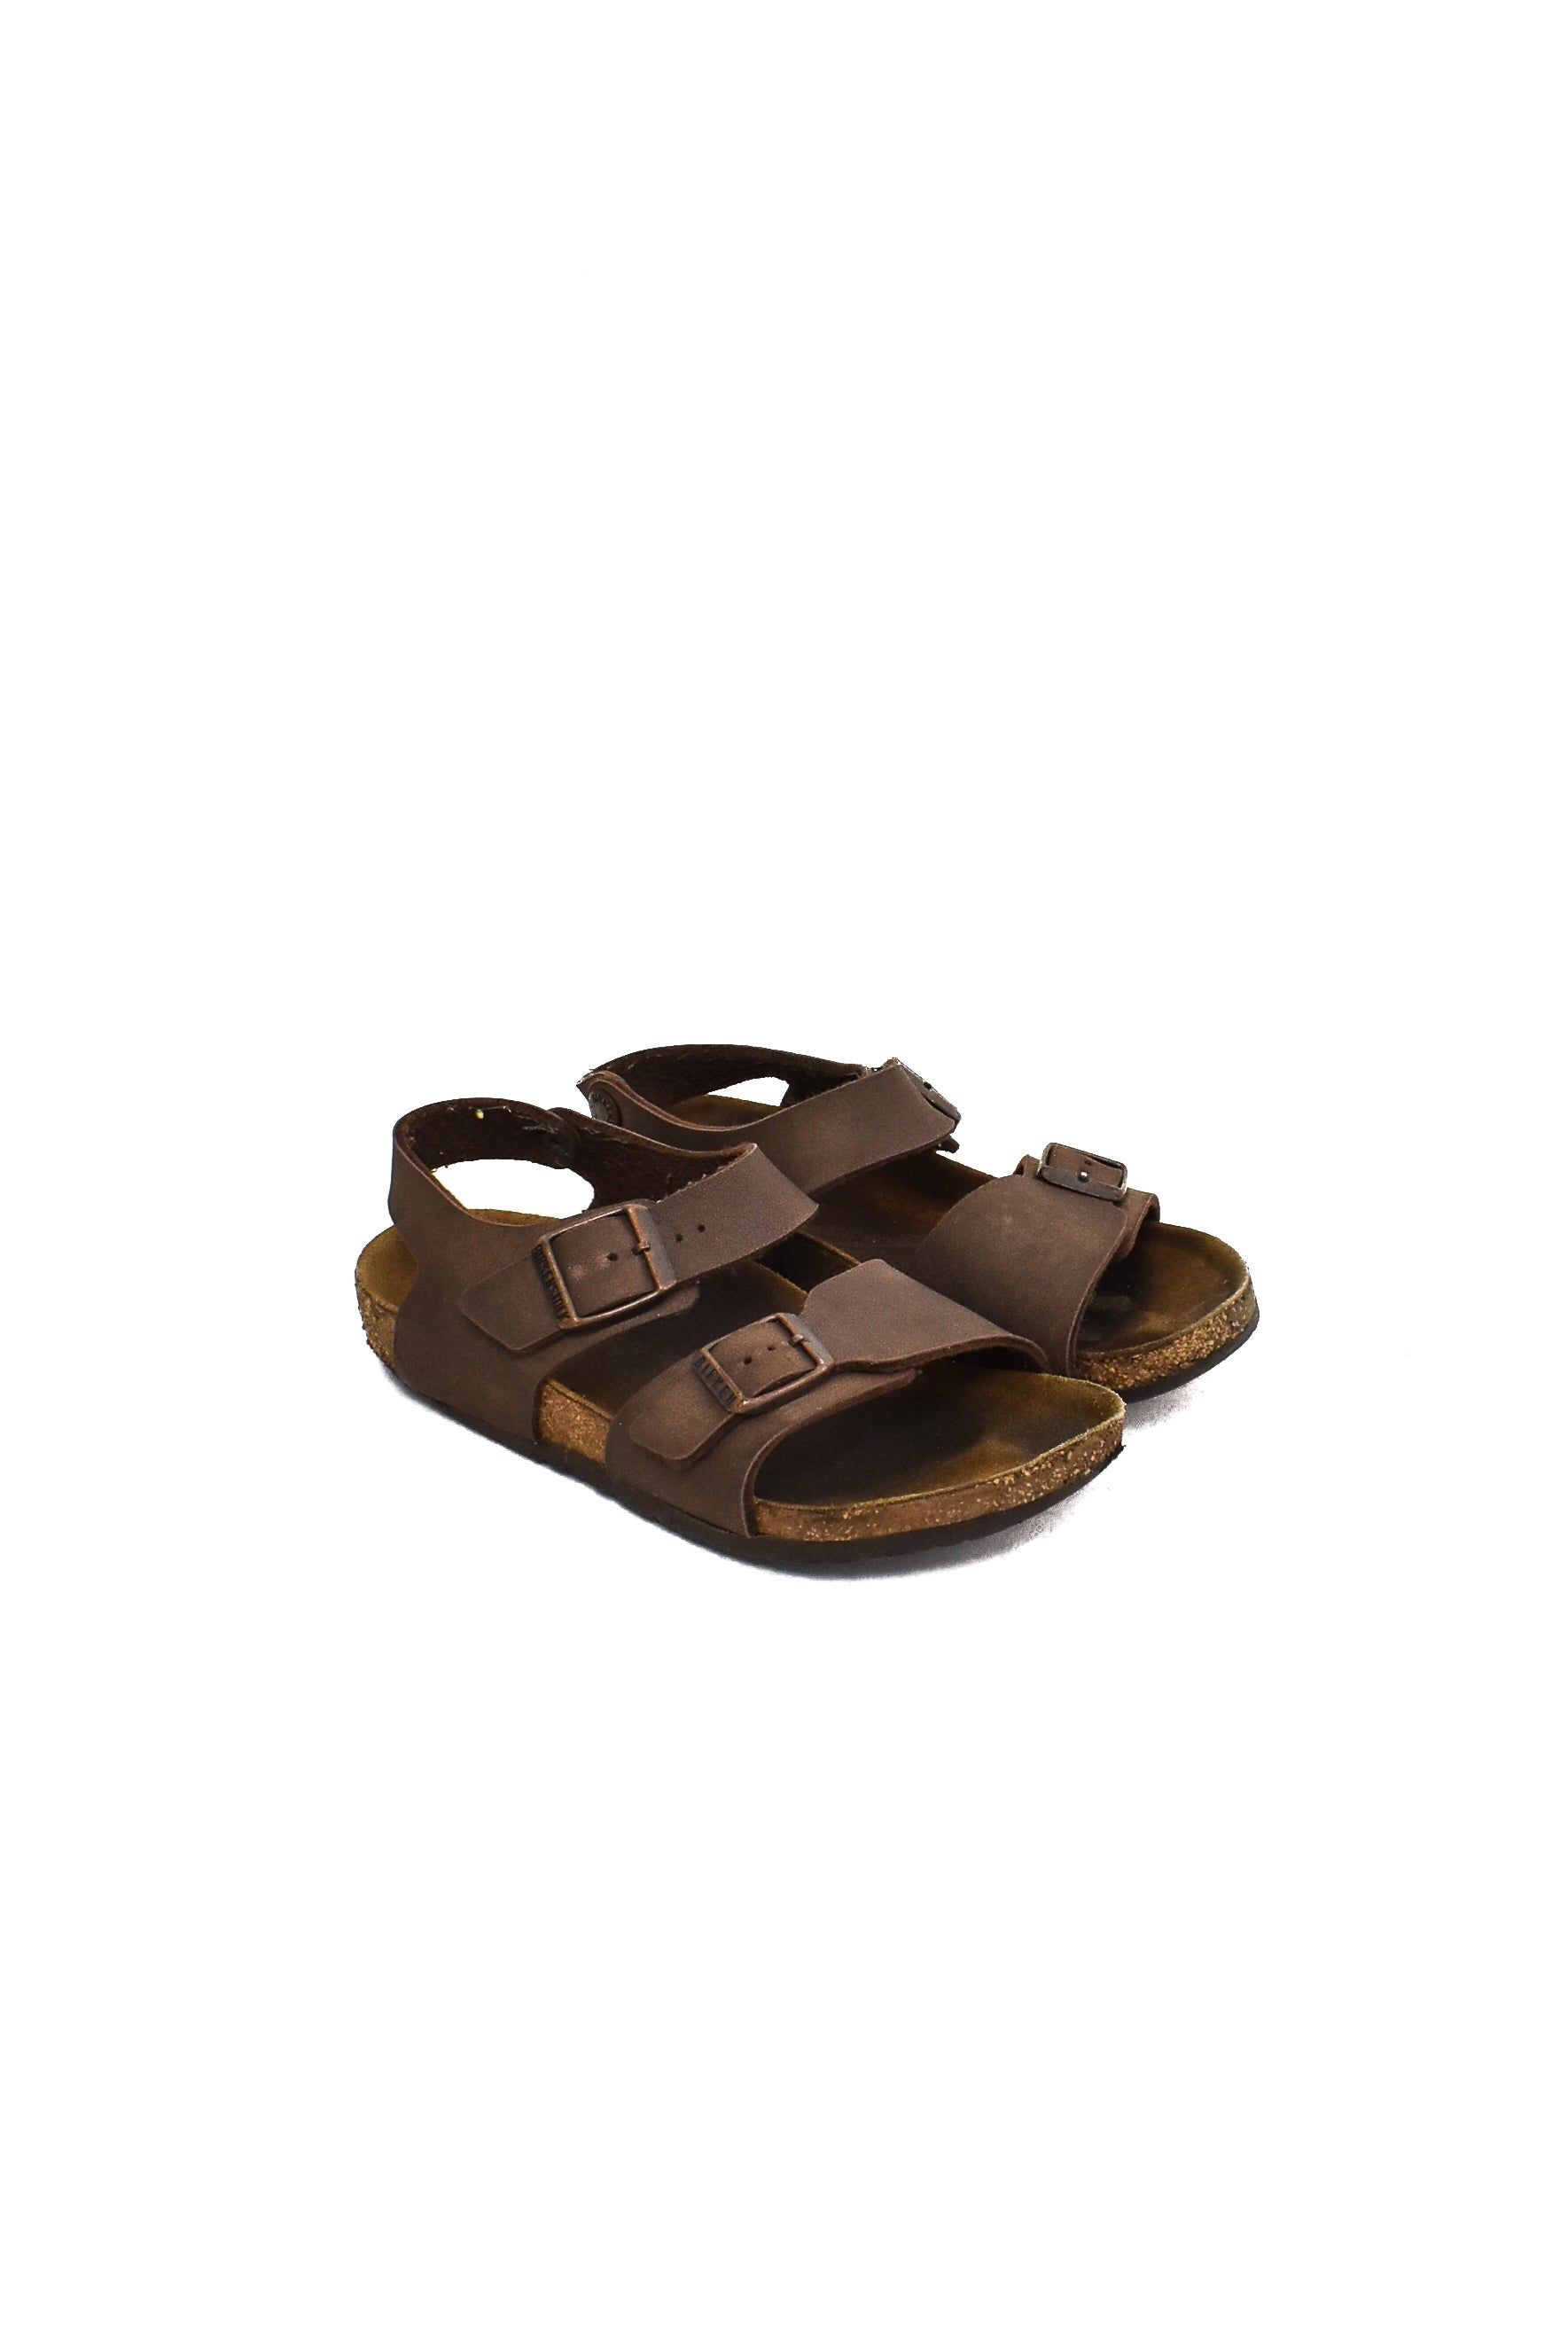 10007707 Birkenstock Kids~ Sandals EU 32 at Retykle